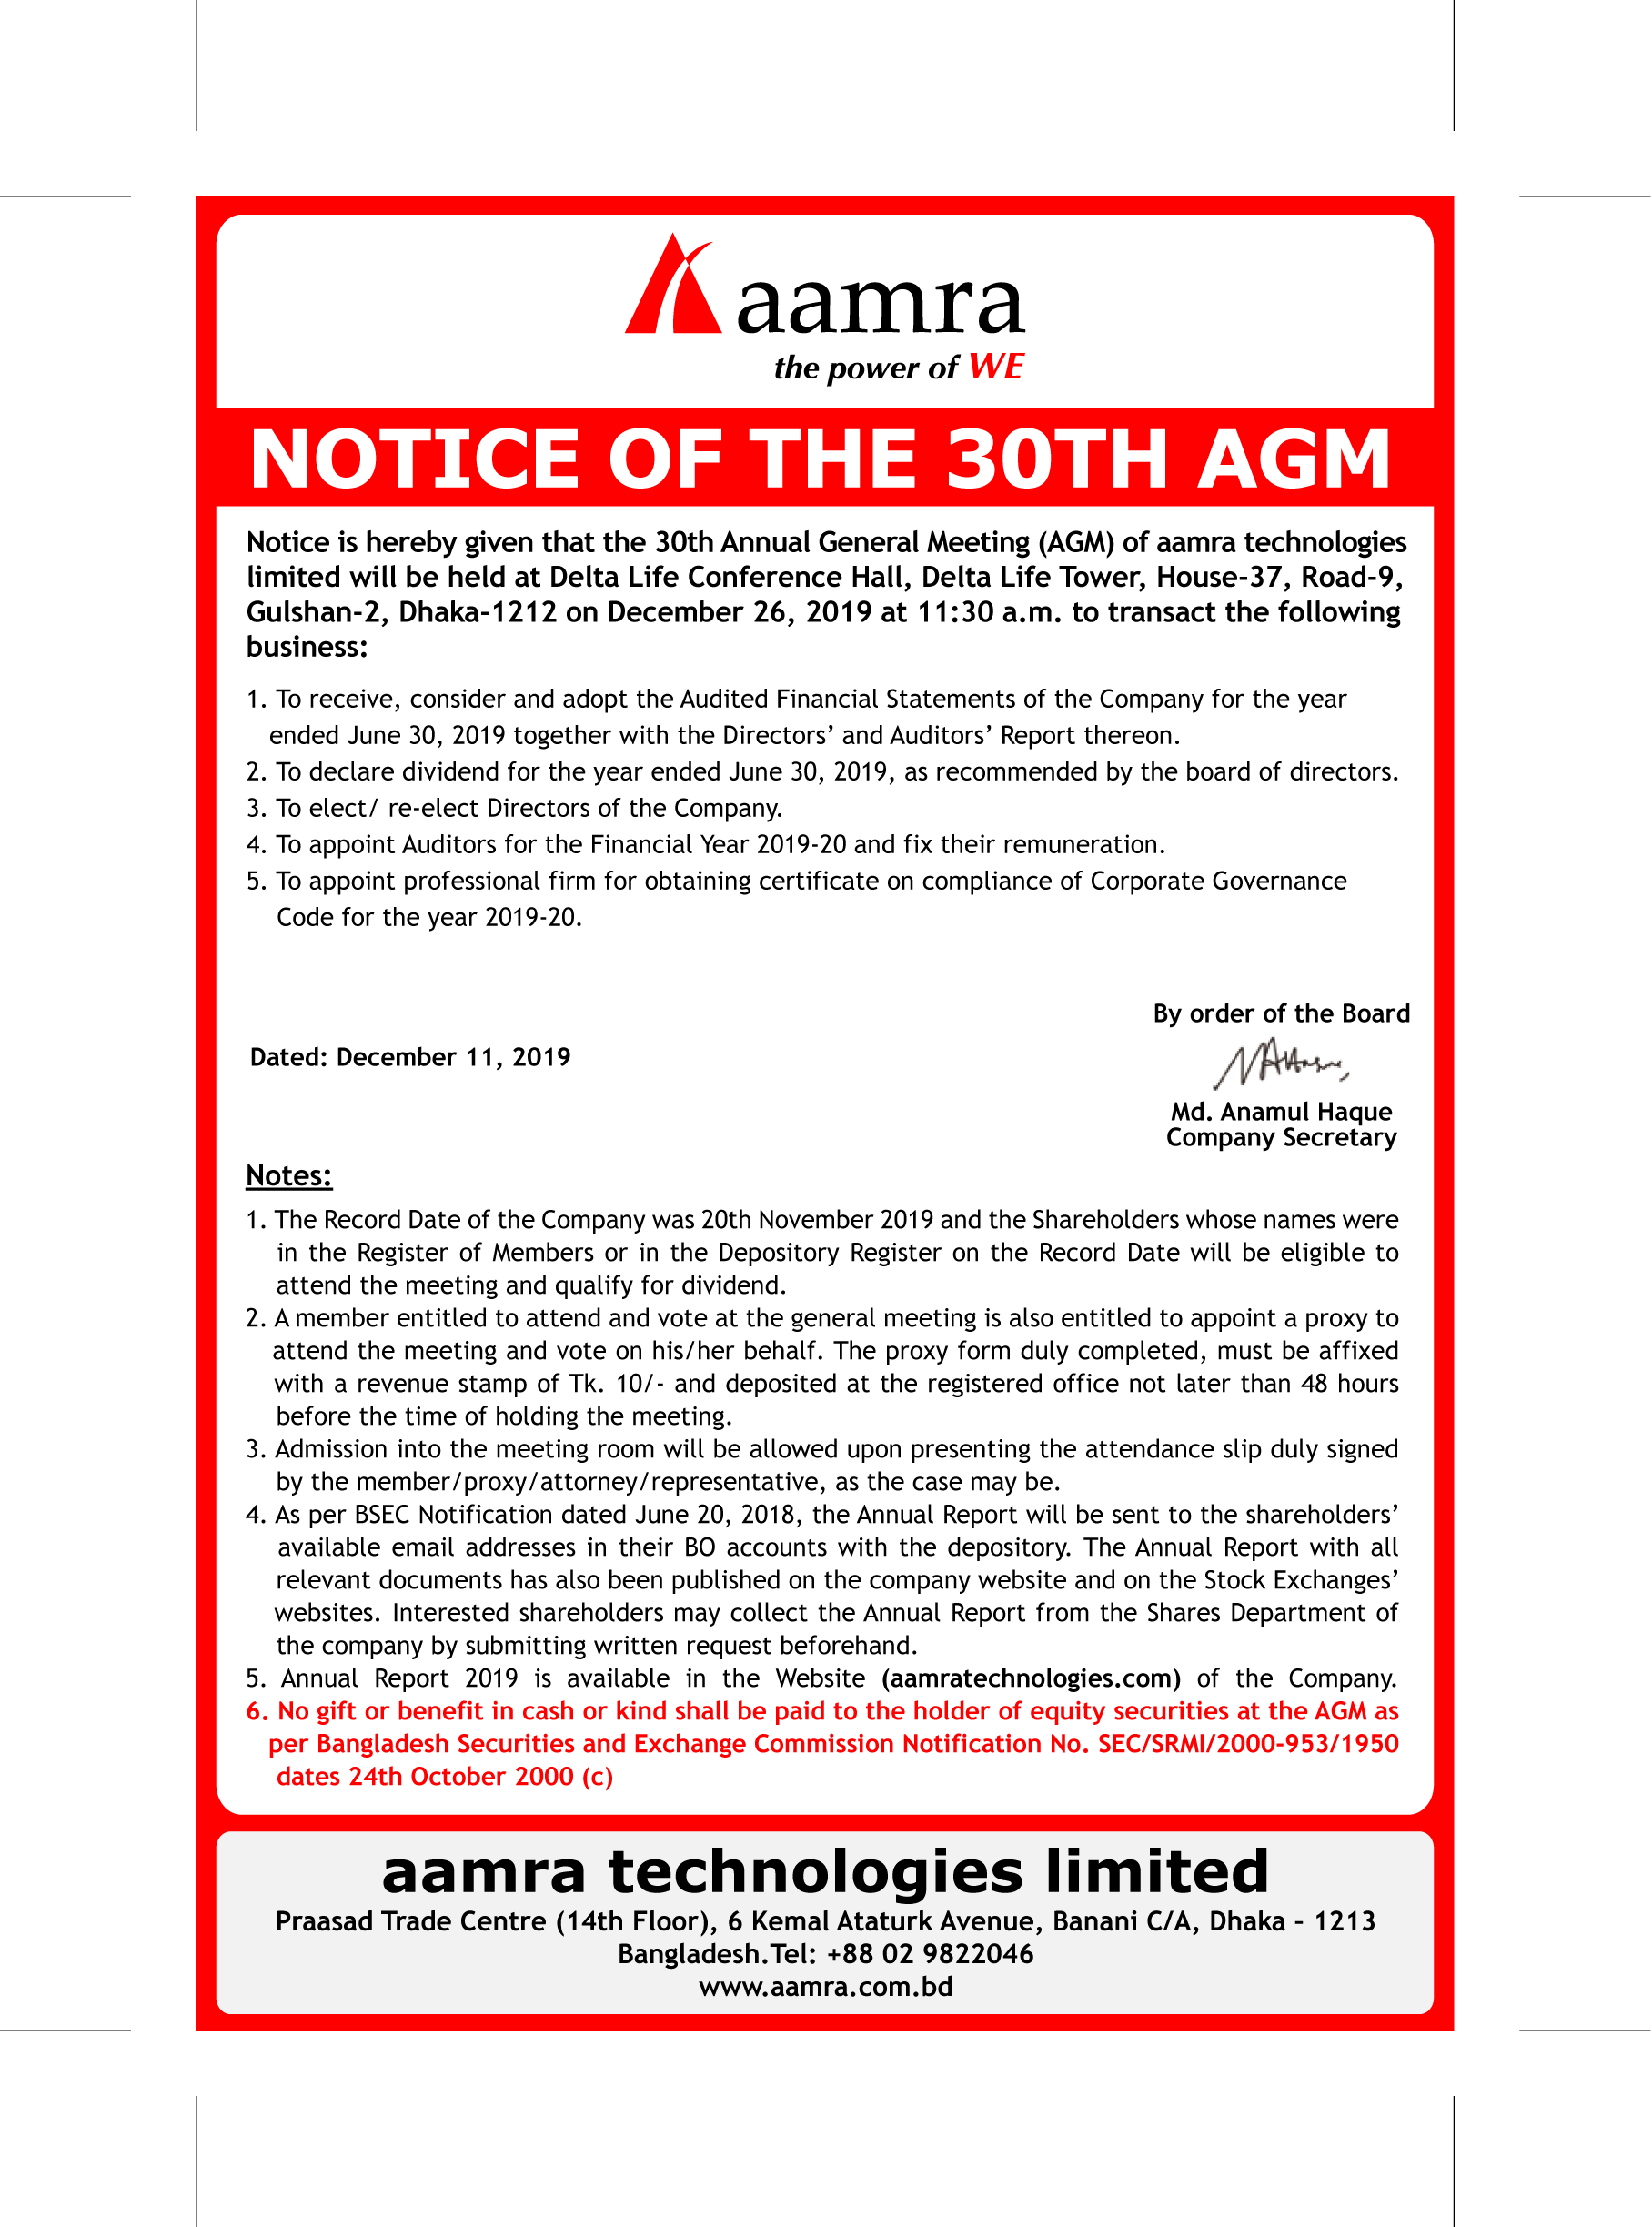 1576071245684_ATL_Notice_of_the_30th_AGM_3_col_x_7_inch_output-[Converted]